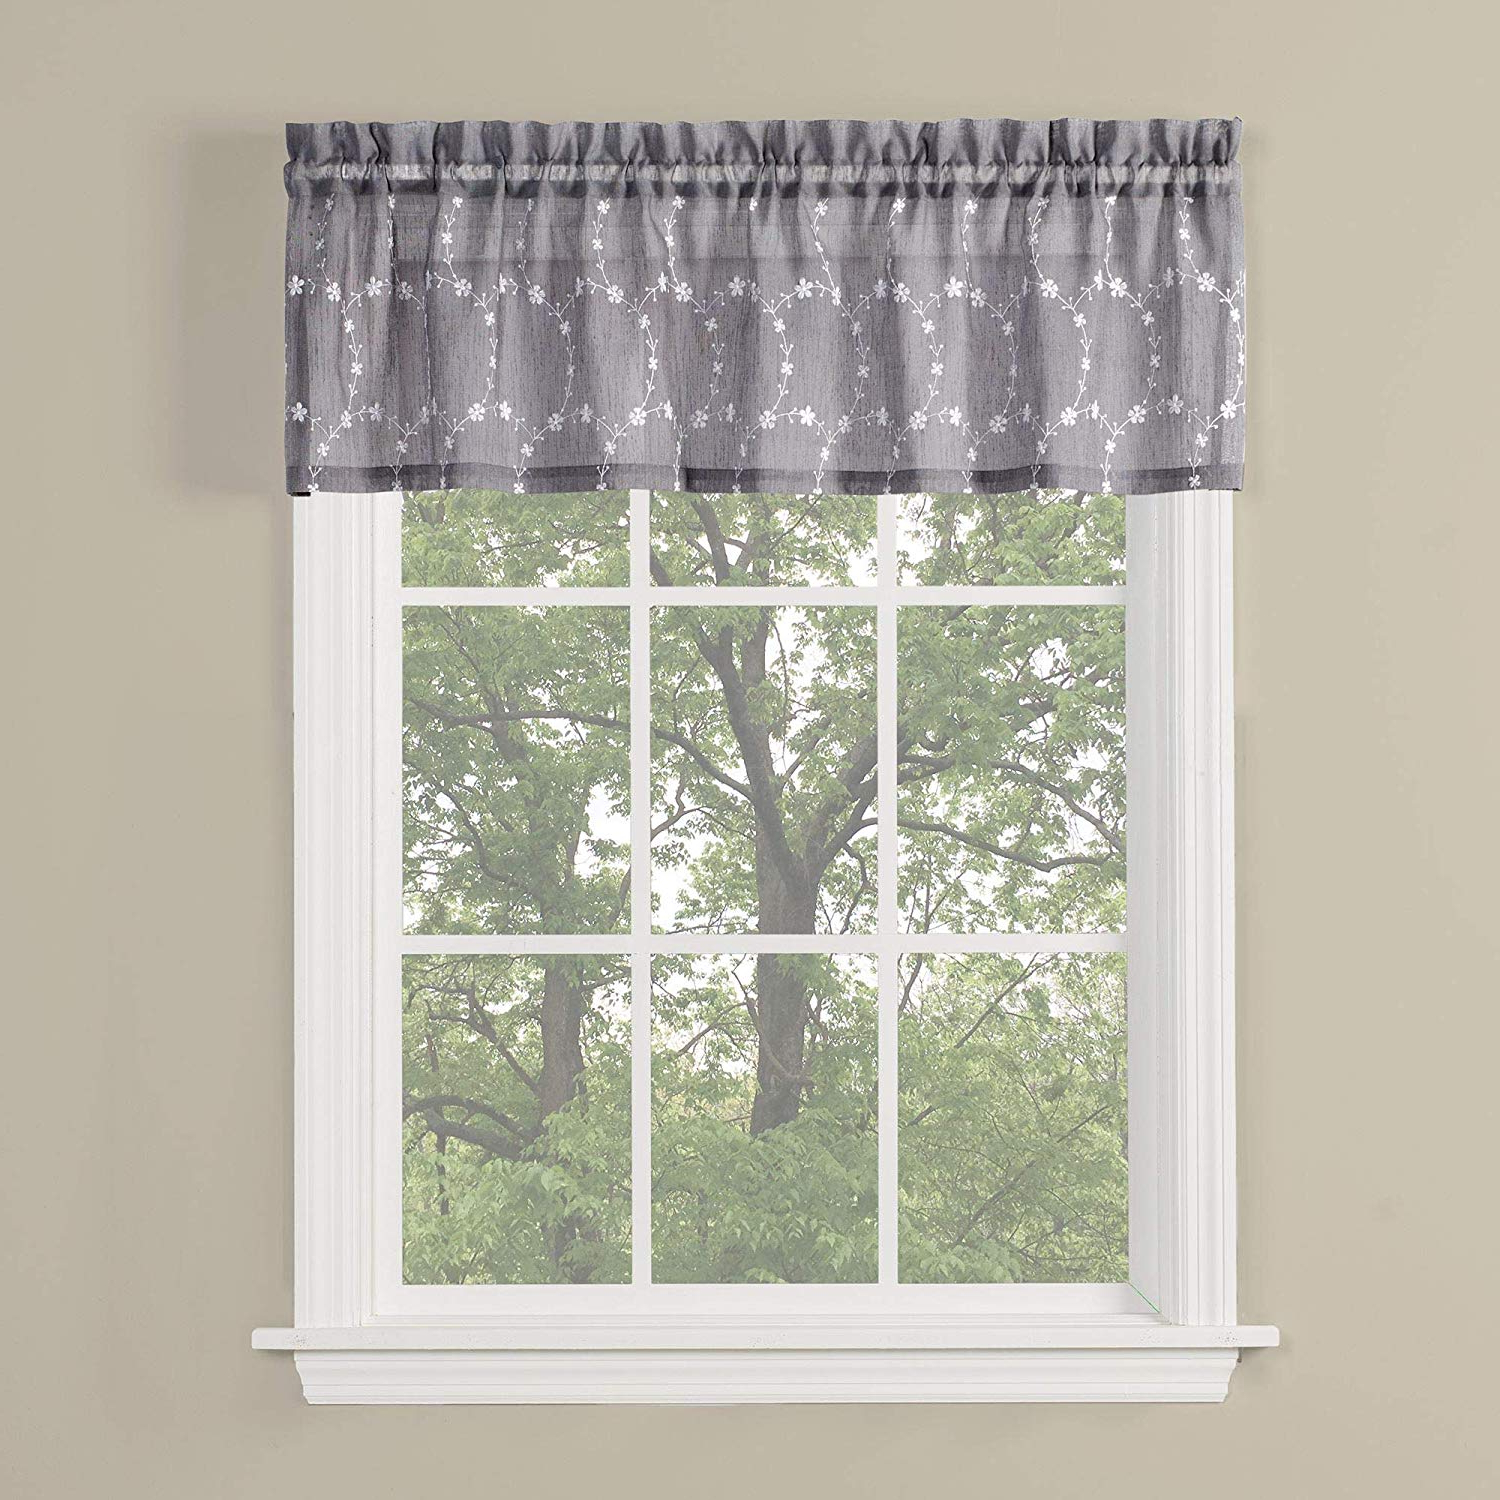 Newest Dove Gray Curtain Tier Pairs Intended For Skl Homesaturday Knight Ltd (View 10 of 20)